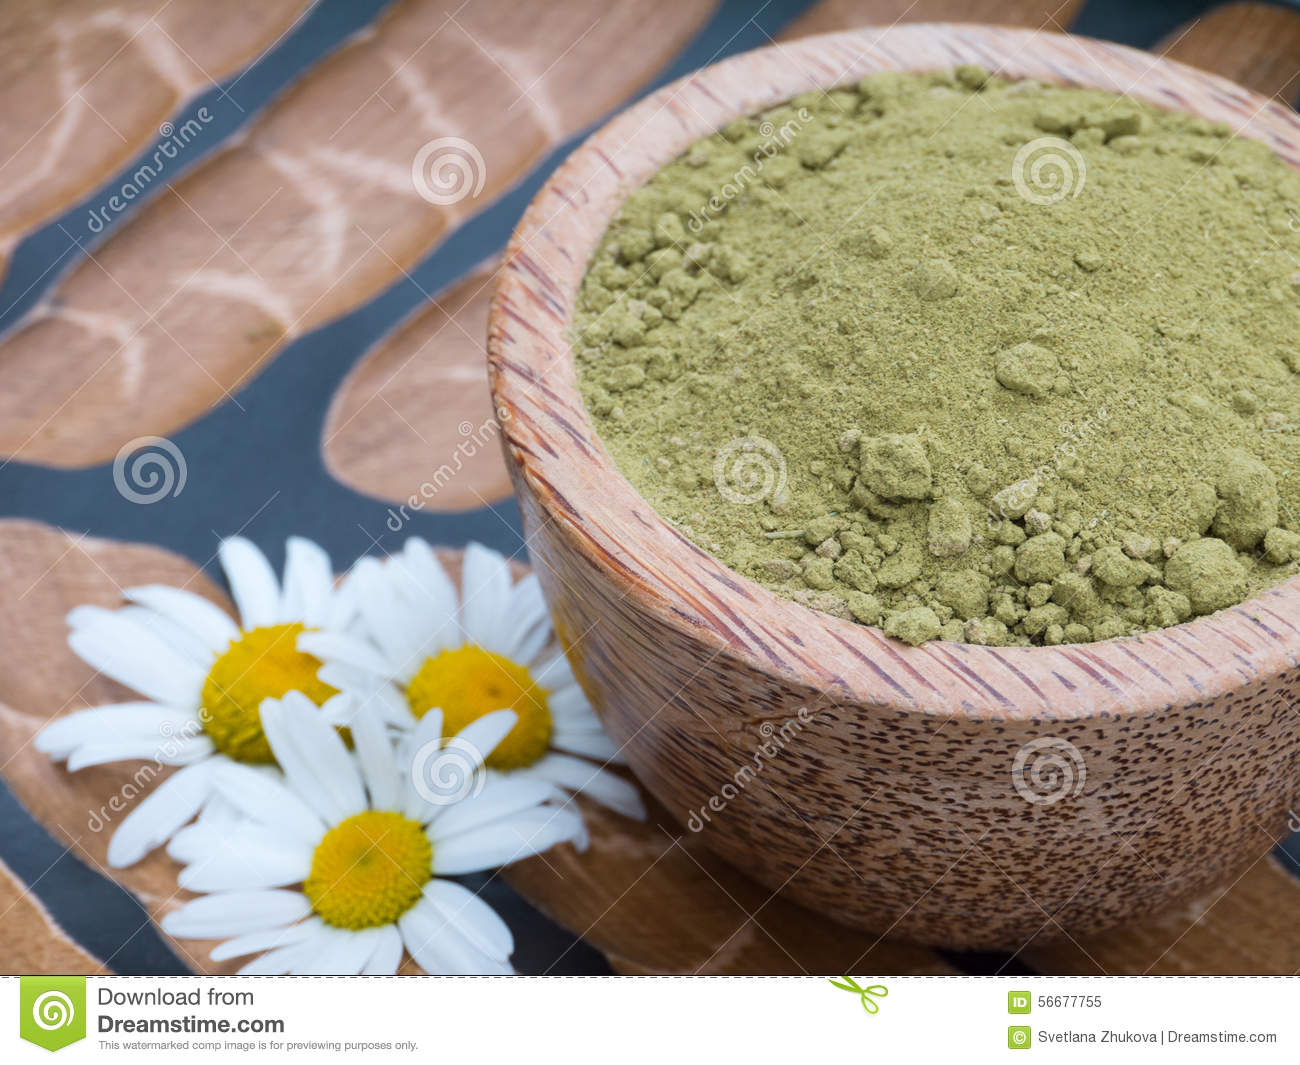 Henna Powder Hair Colourant In The Coconut Bowl And Chamomile Fl